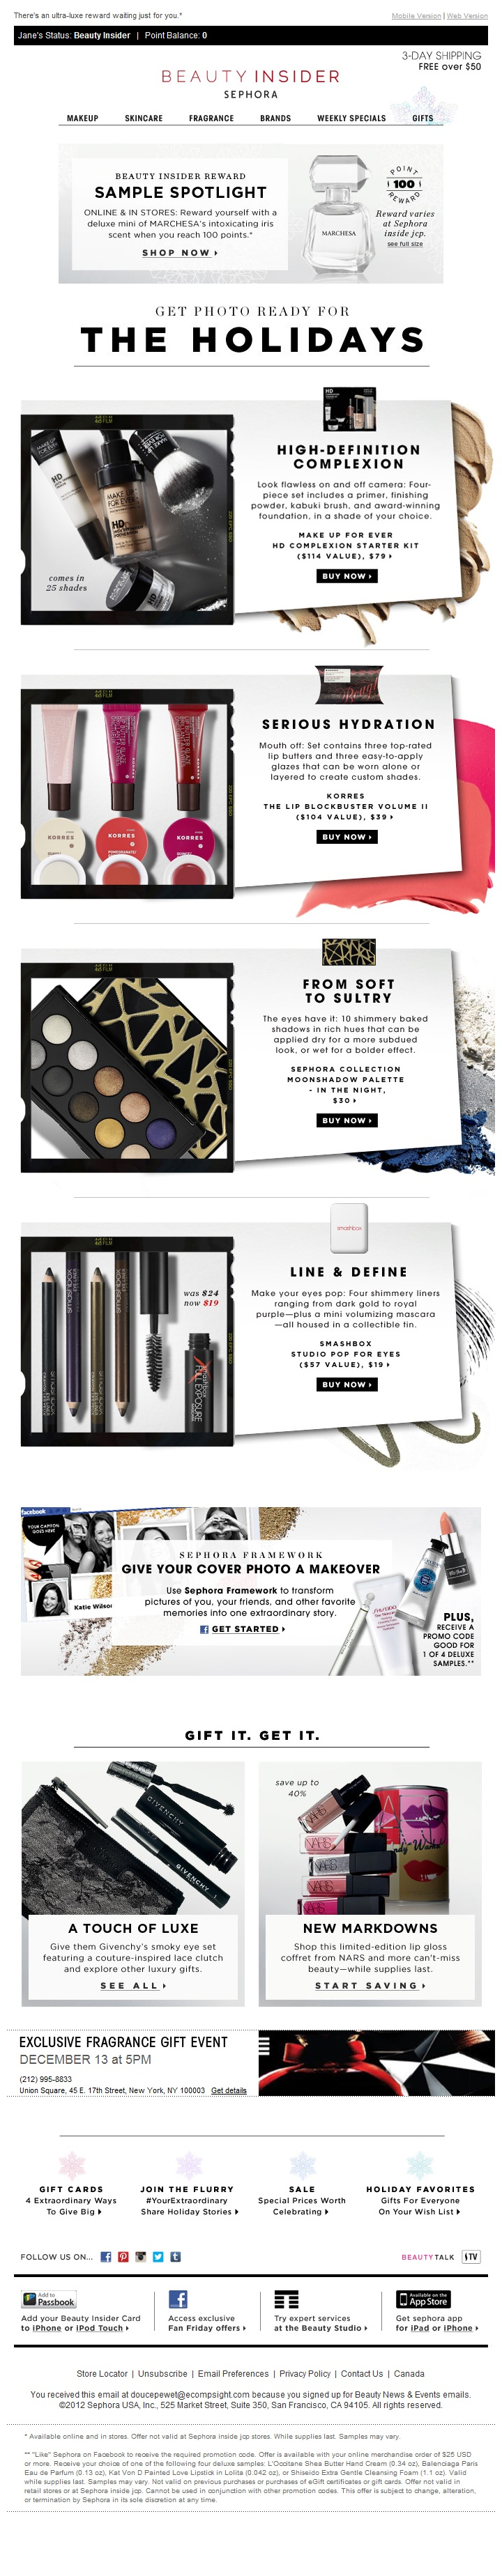 Get photo-ready for the holiday beauty #email #emailinspiration